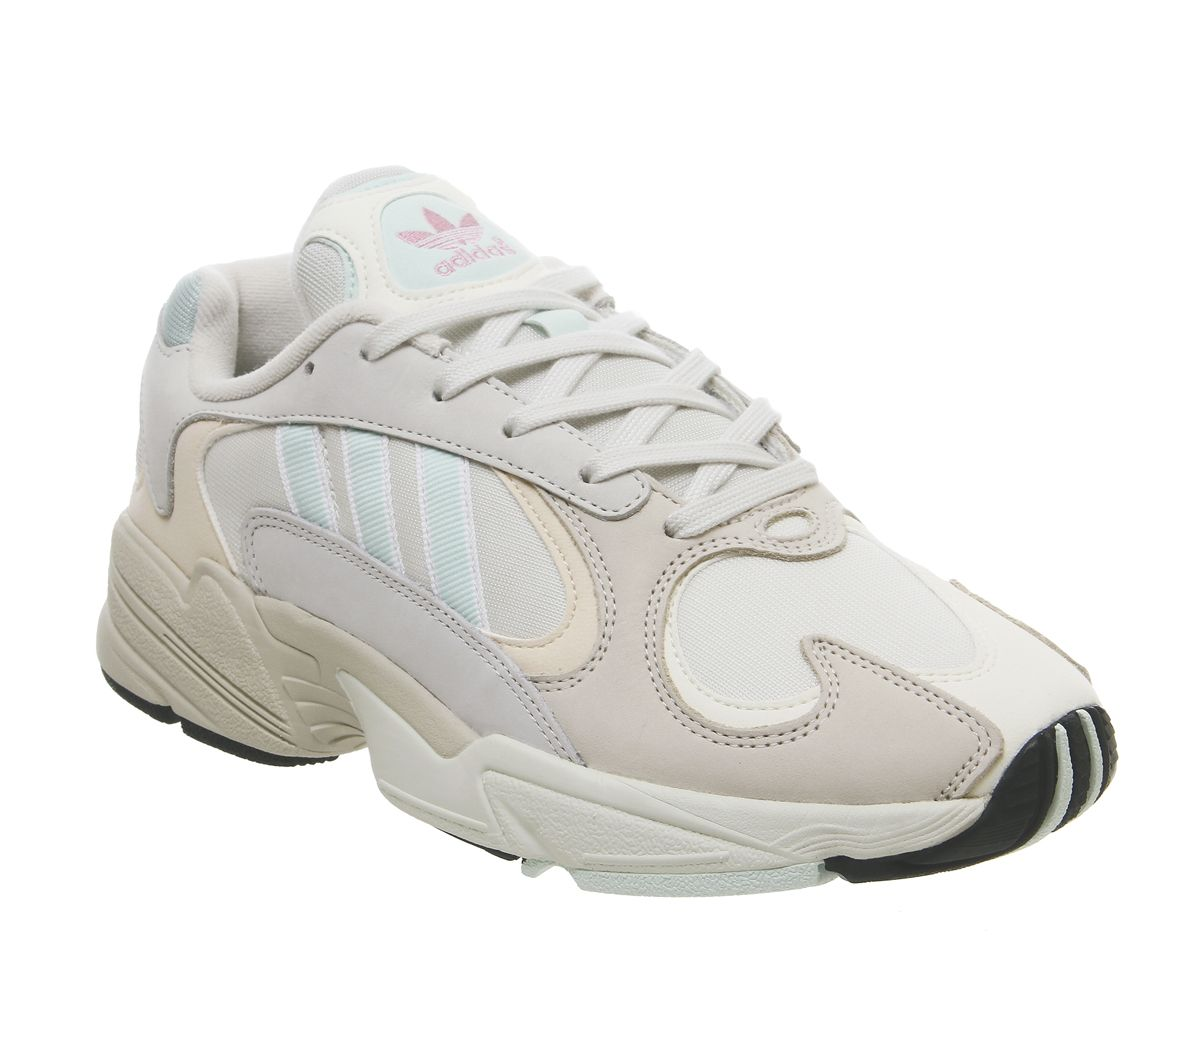 f19d2df5052 adidas Yung 1 Trainers Off White Ice Mint Ecru Tint - Unisex Sports